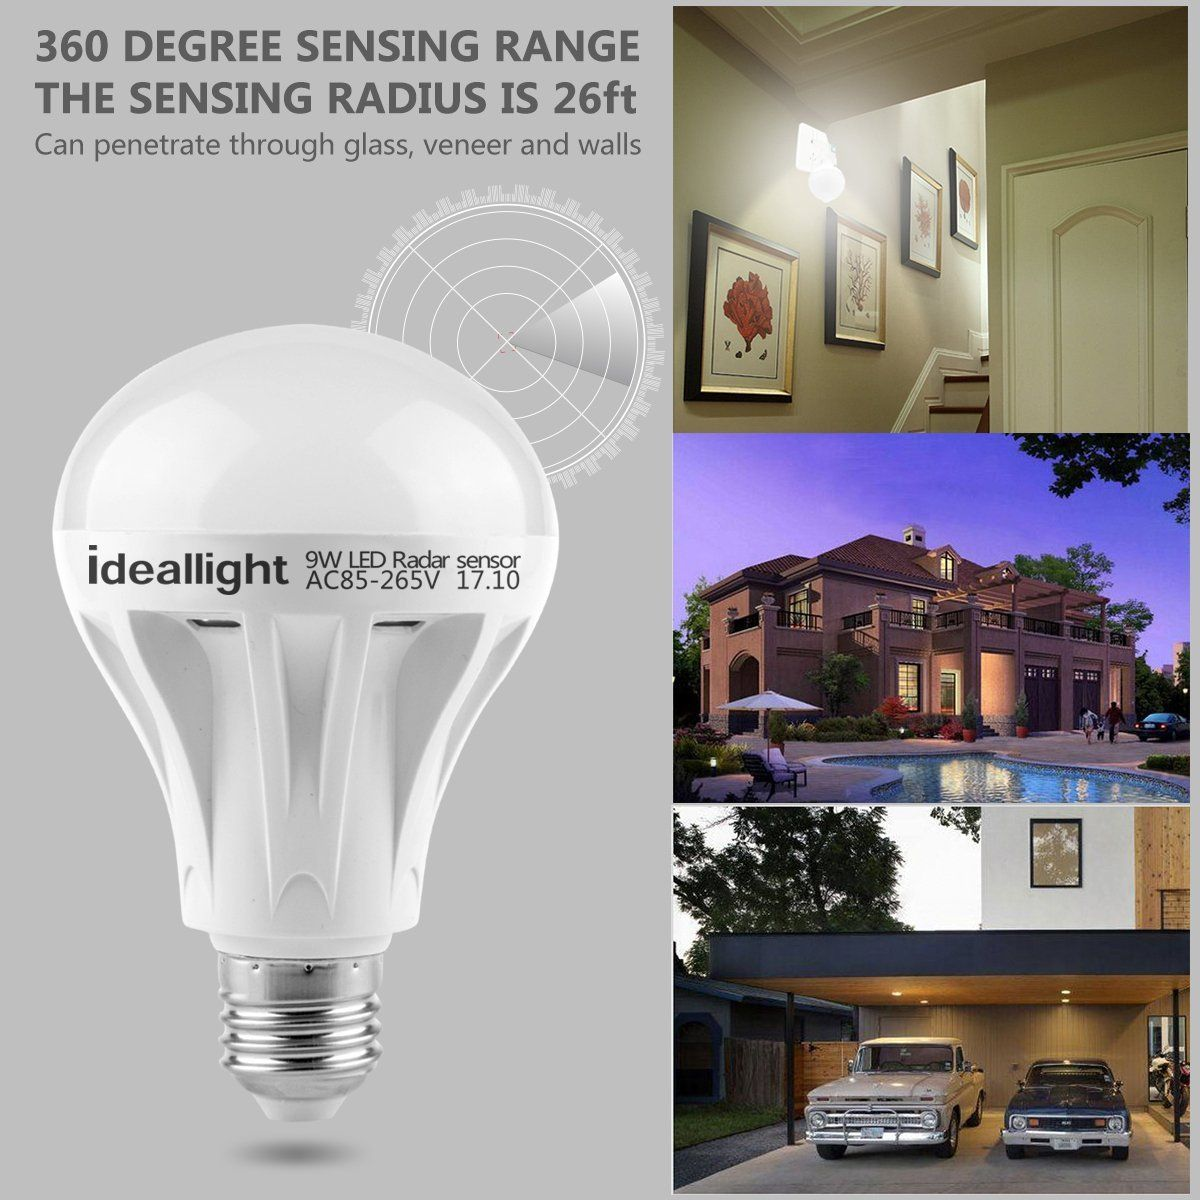 Motion Sensor Light Bulb Radar Motion Activated Led Bulb Dusk To Dawn E26 E27 Auto On Off Indoor Outdoor Movement Detector Night Light For Front Door Hallway St Motion Sensor Lights Light Sensor Sensor Night sensor for outdoor lights